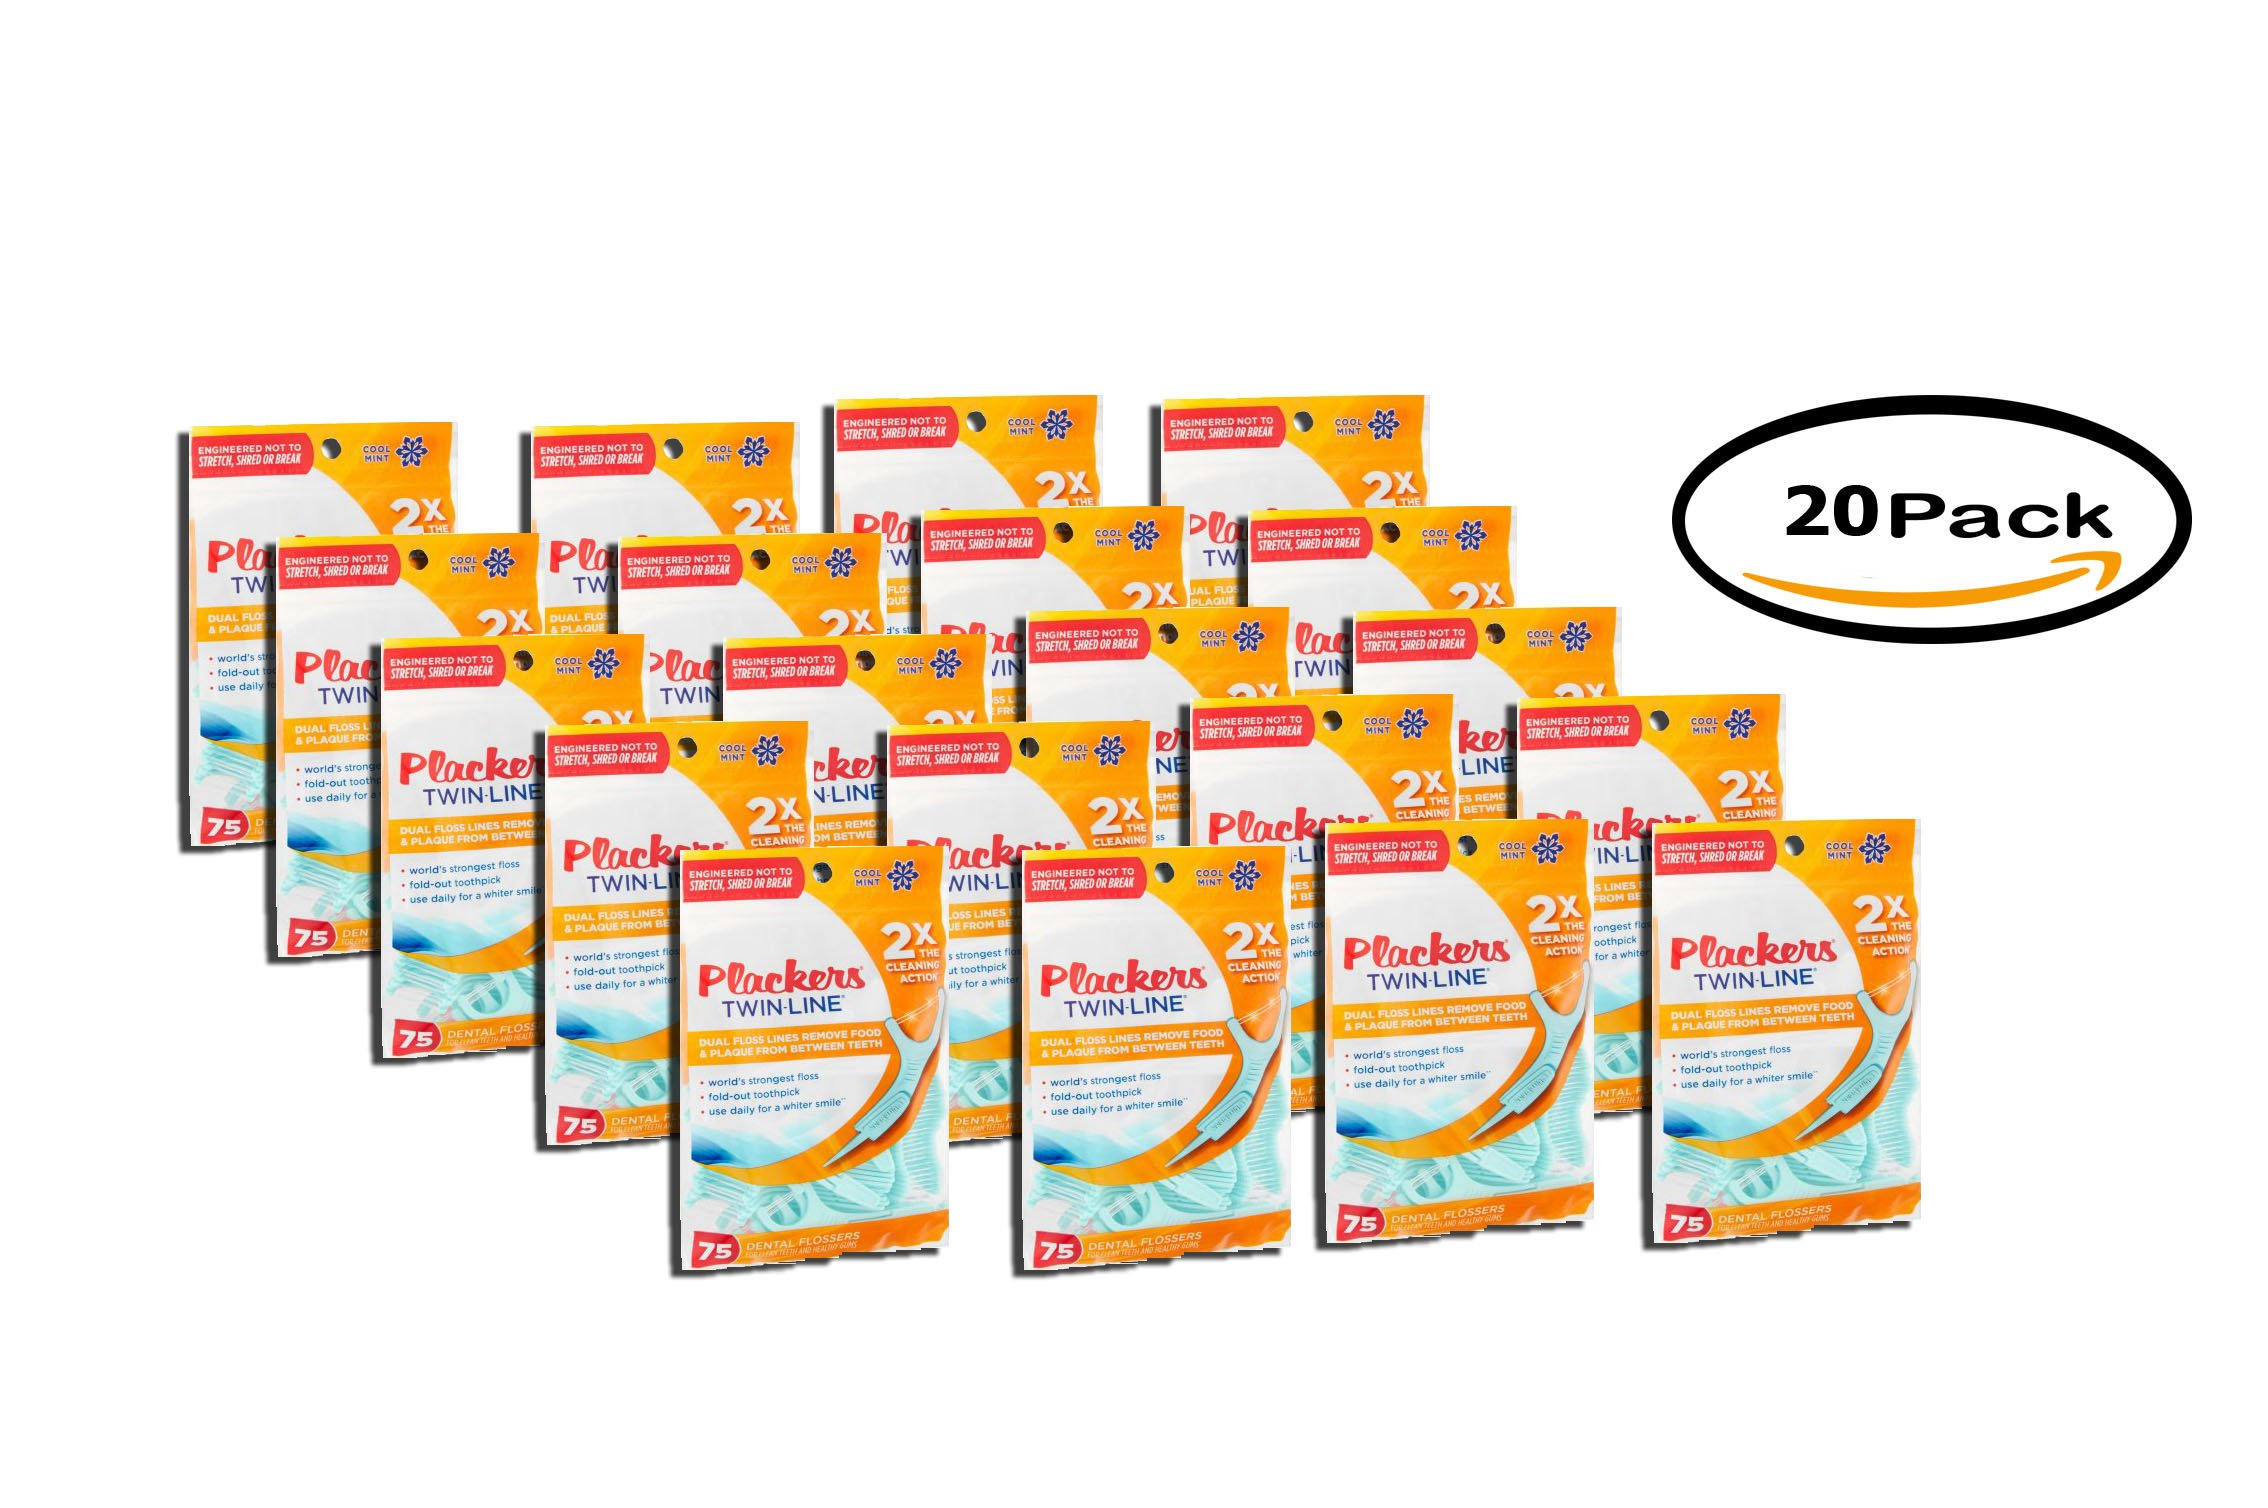 PACK OF 20 - Plackers Twinline Flossups 75ct by Plackers (Image #1)